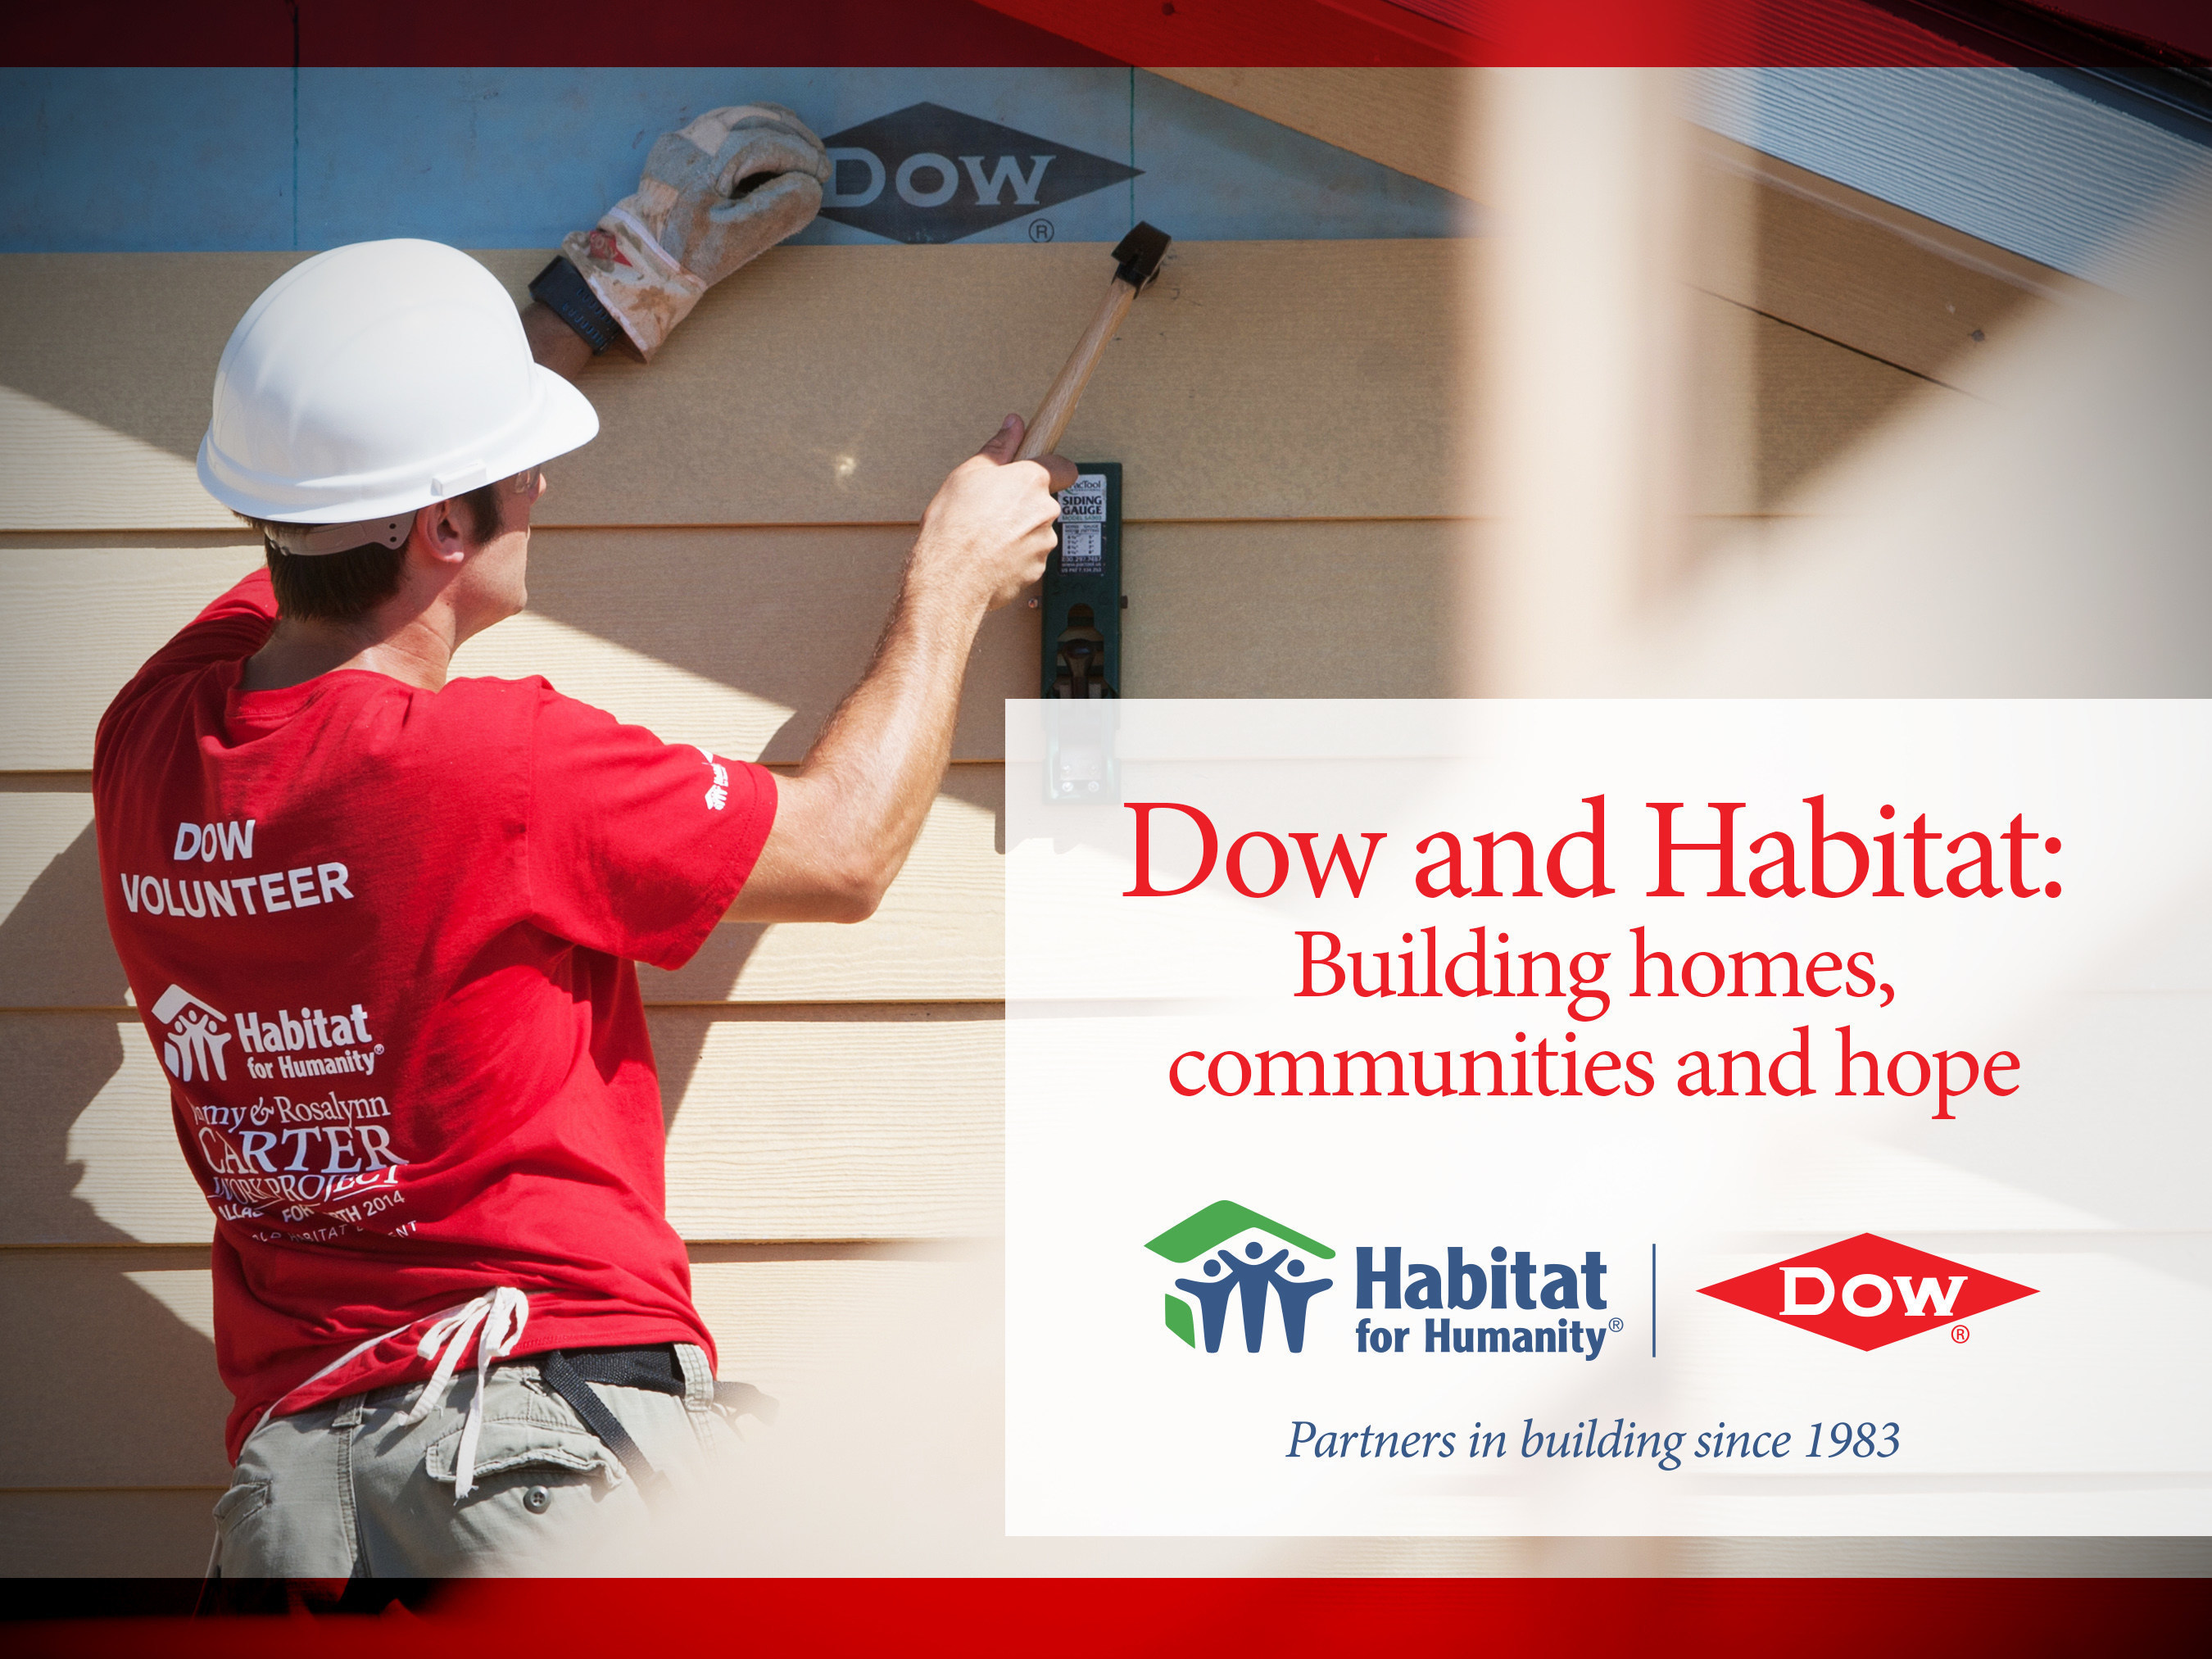 Dow and Habitat: Building homes, communities and hope